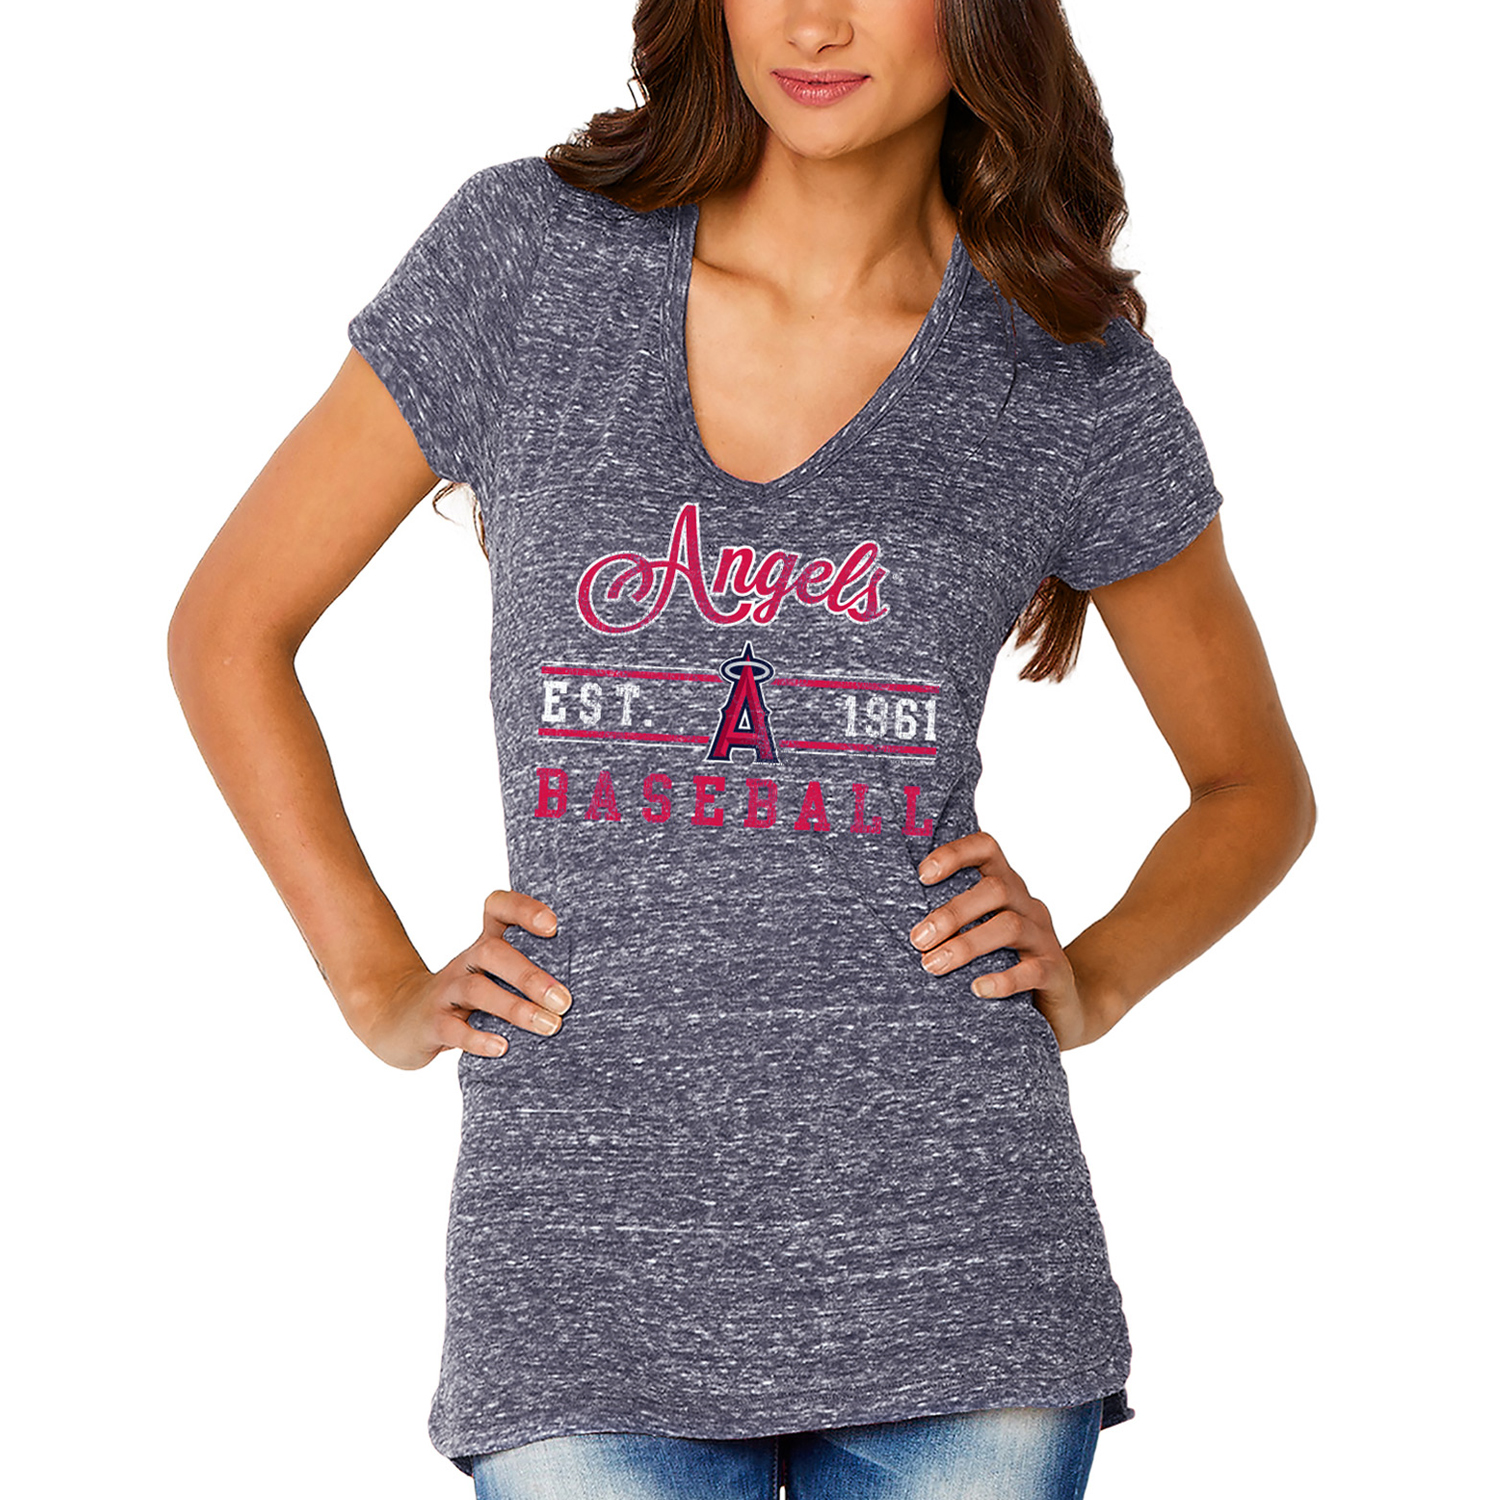 Los Angeles Angels Soft as a Grape Women's Double Play V-Neck T-Shirt - Navy